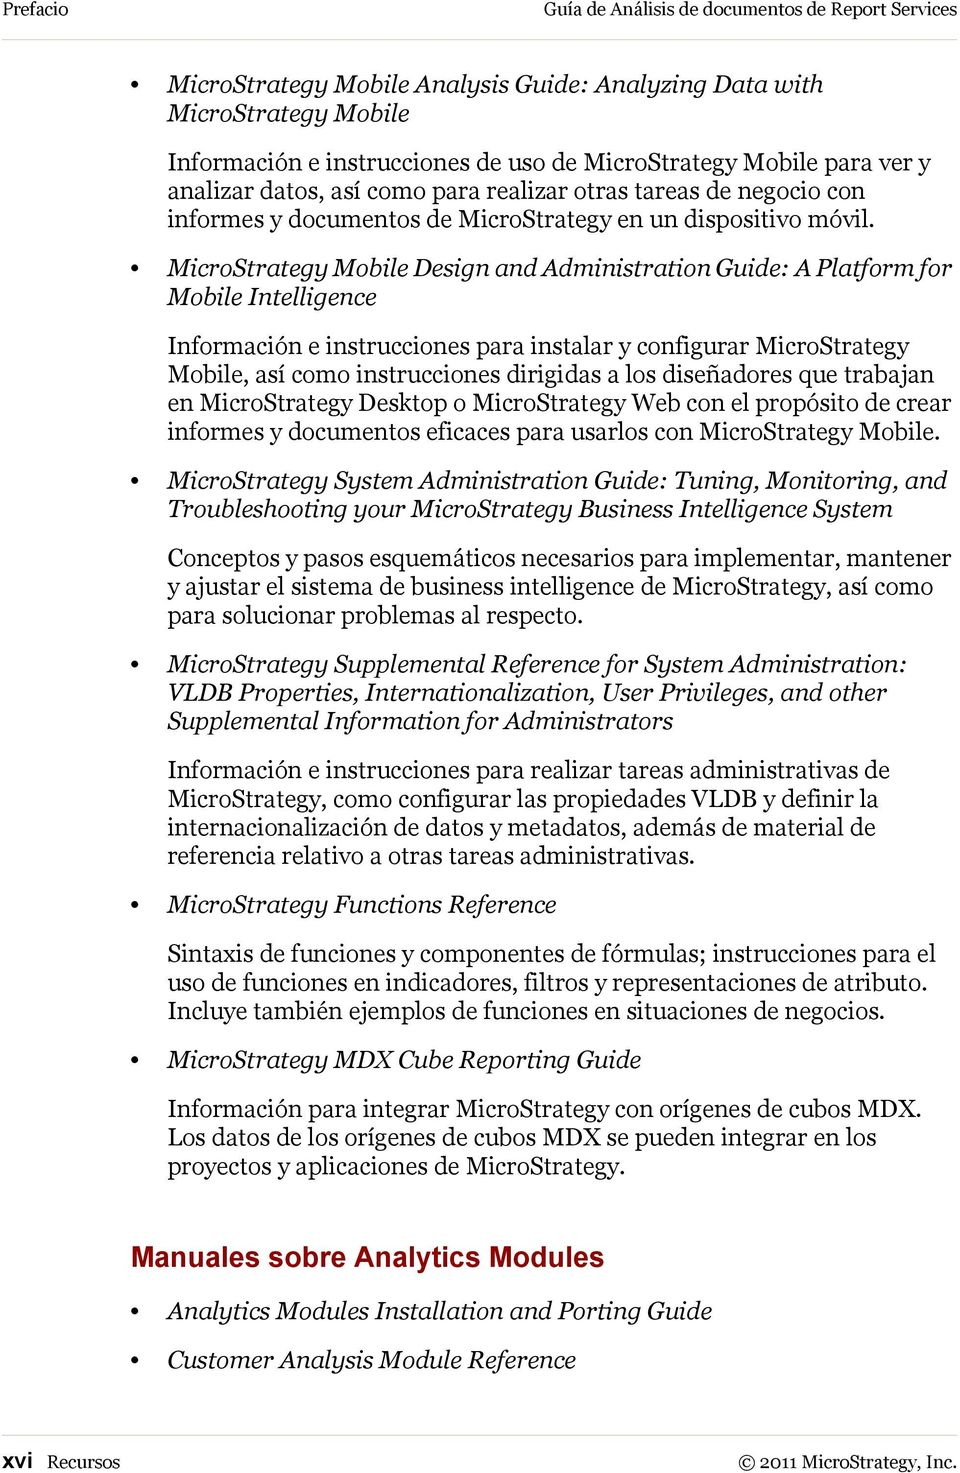 MicroStrategy Mobile Design and Administration Guide: A Platform for Mobile Intelligence Información e instrucciones para instalar y configurar MicroStrategy Mobile, así como instrucciones dirigidas